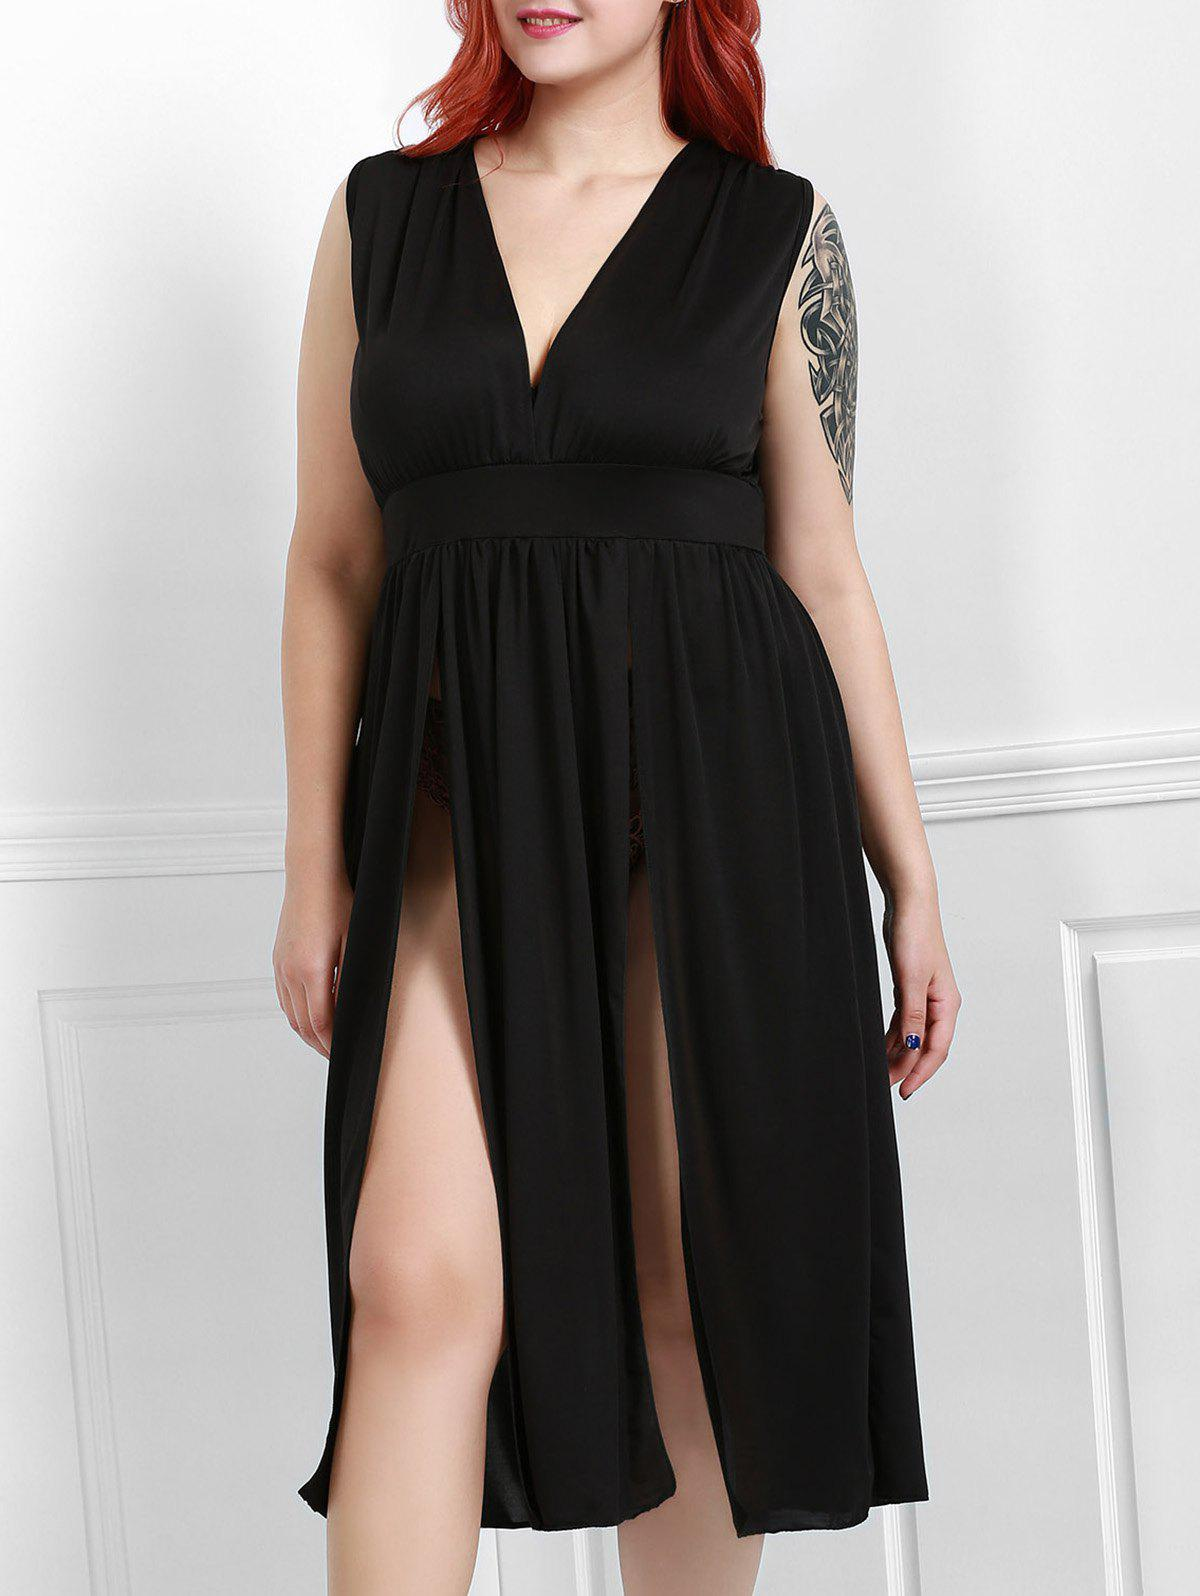 Sexy Plunging Neck Sleeveless Solid Color Plus Size High Slit Women's Dress